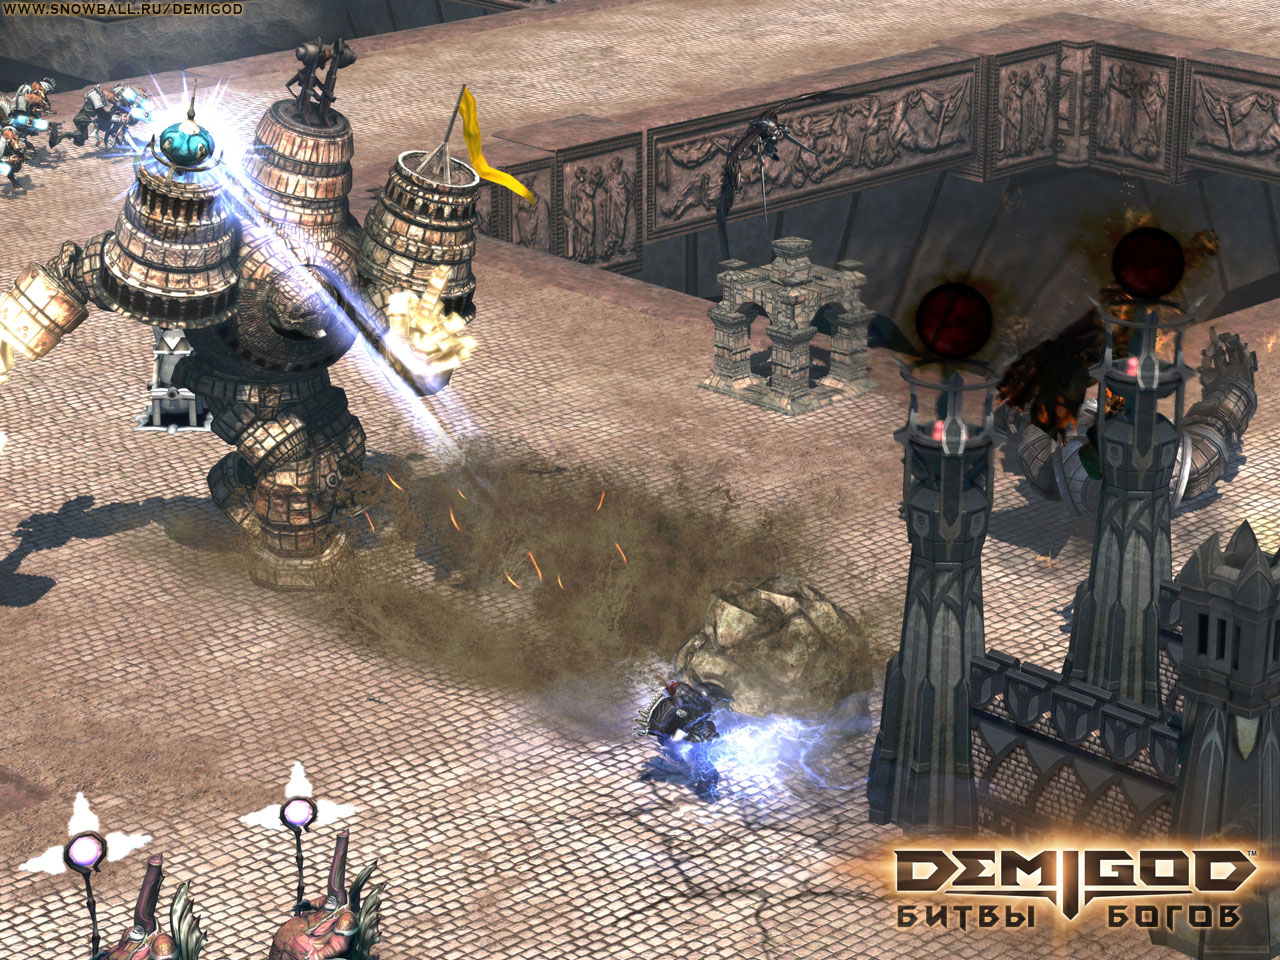 Screenshot for the game Demigod. Битвы богов (2009) PC | RePack от R.G. Механики